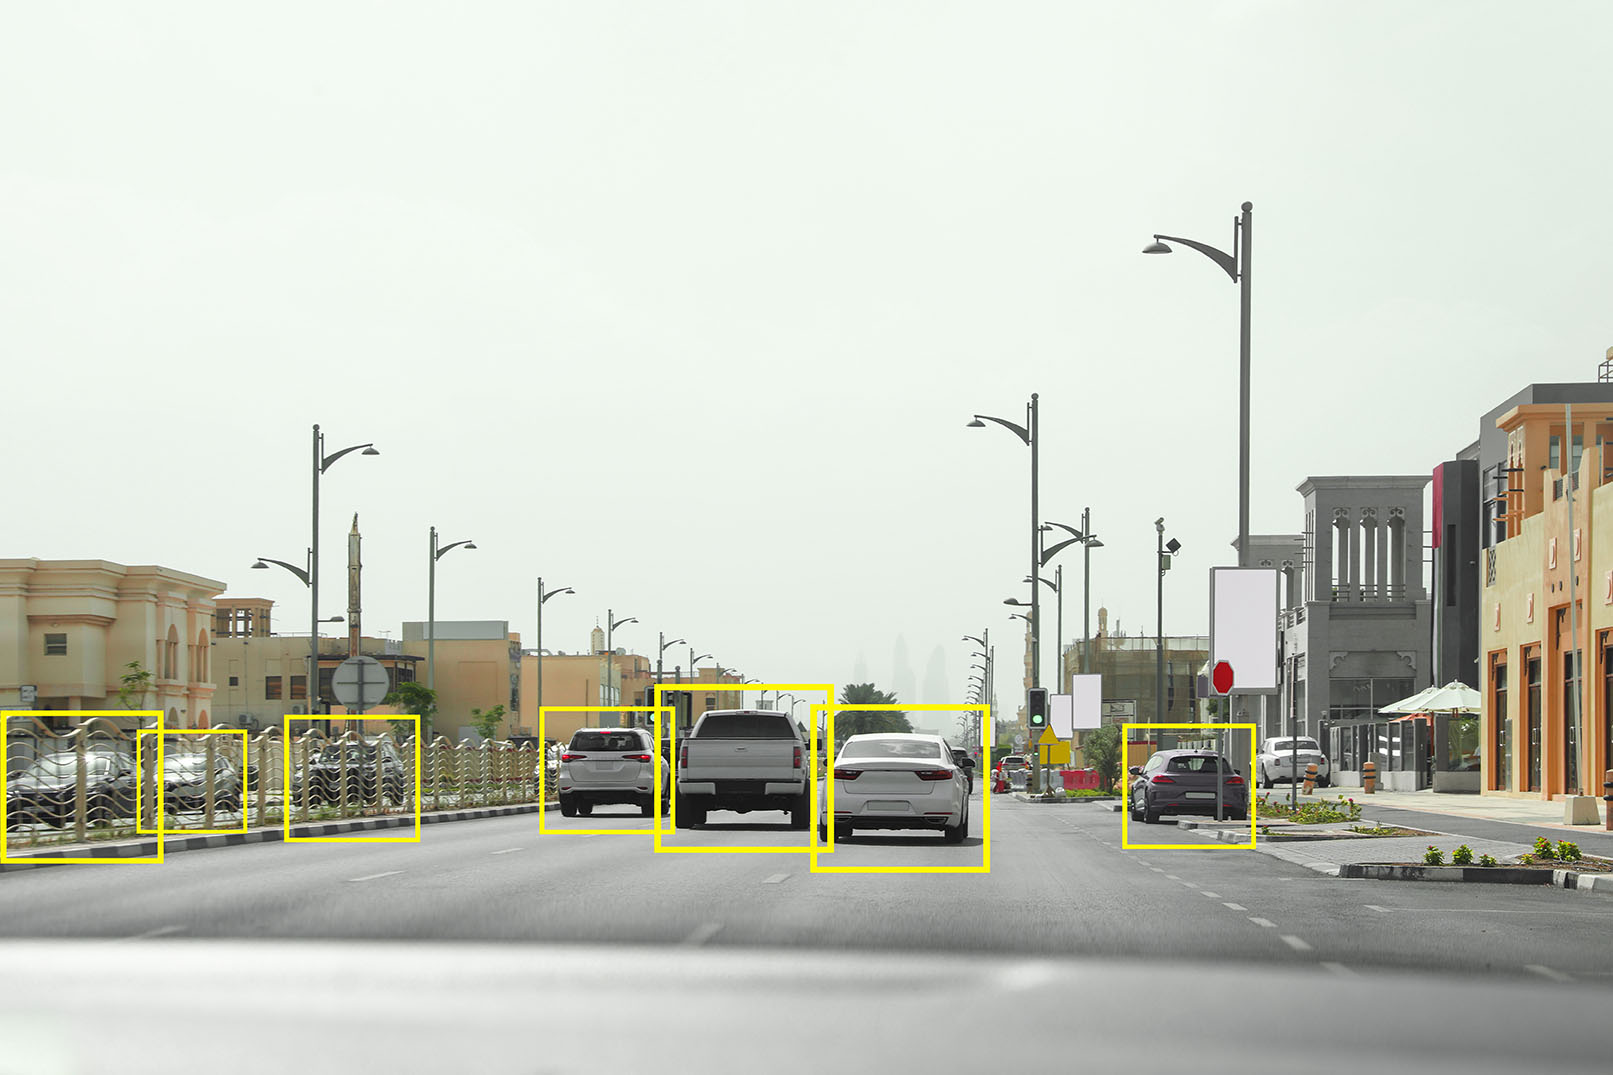 Example image of what a monocular with inferencing can detect while driving